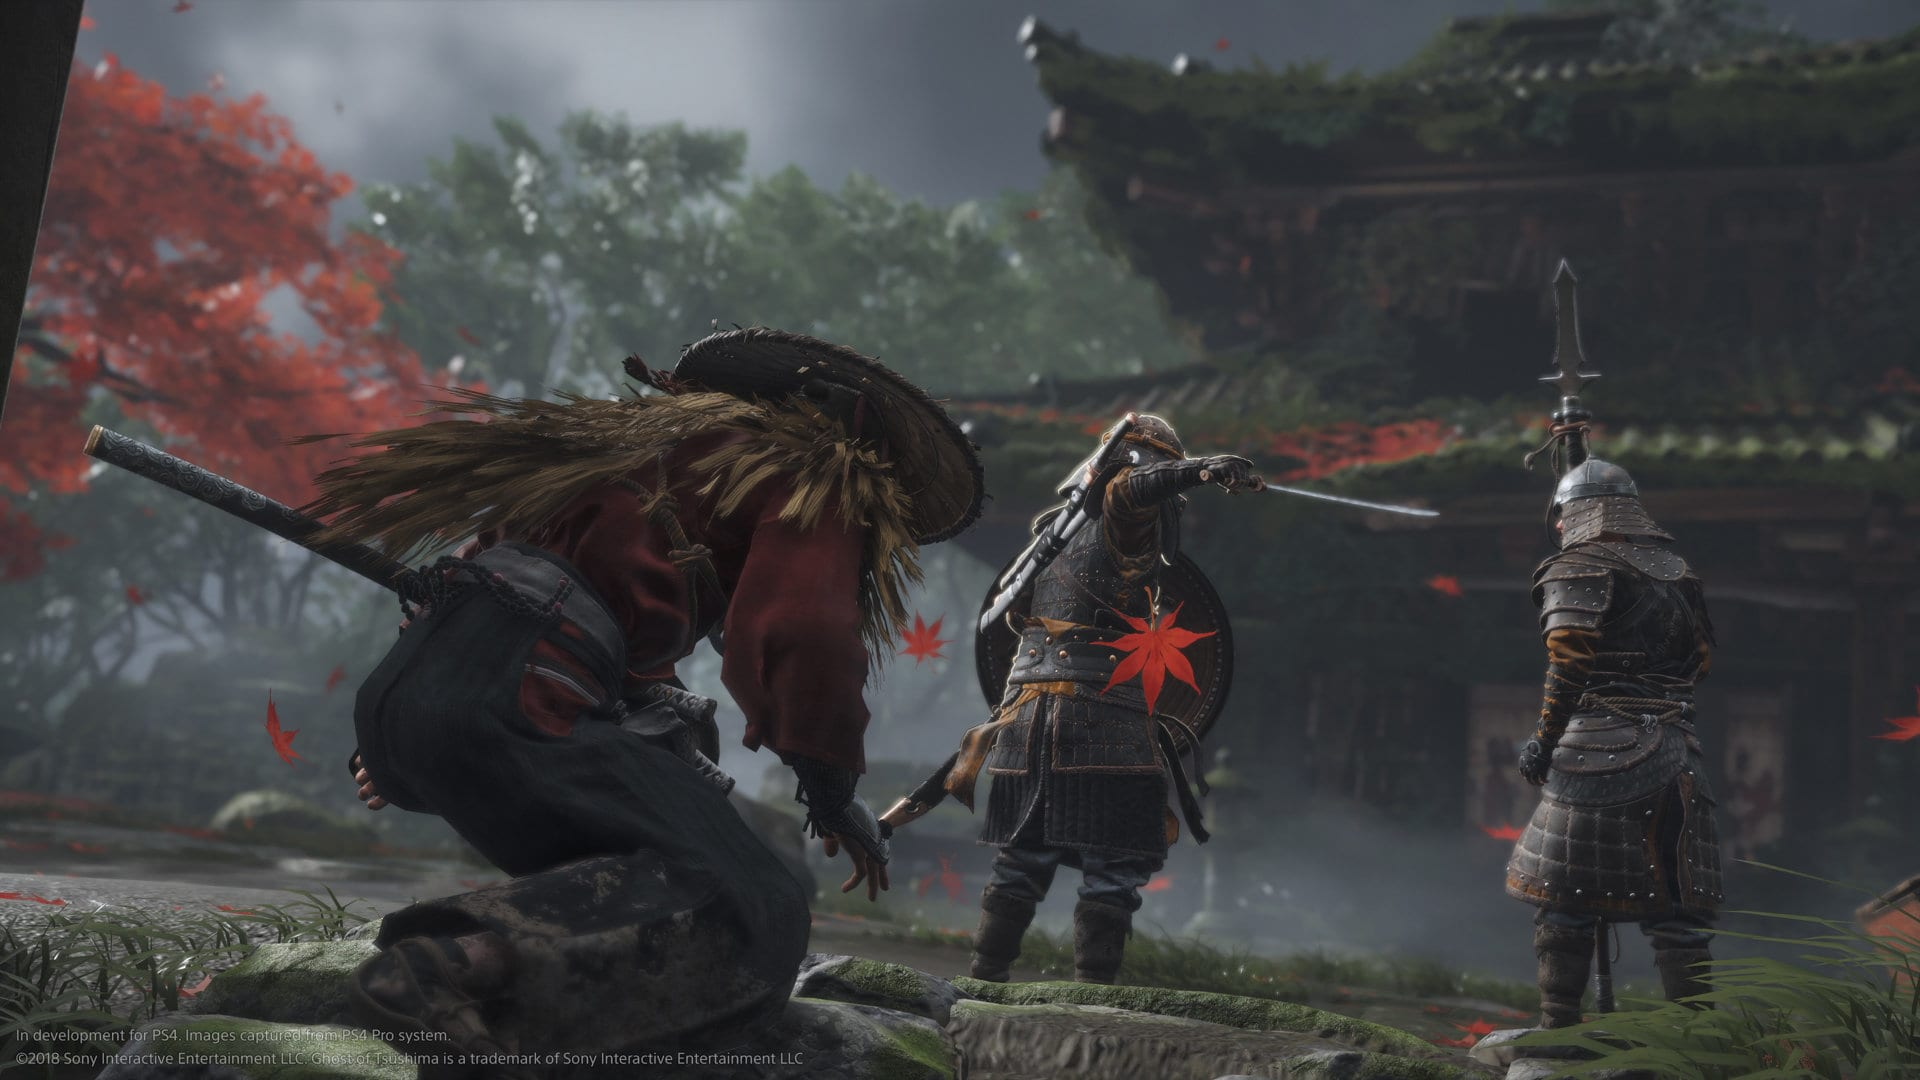 ghost of tsushima, the game awards, trailer